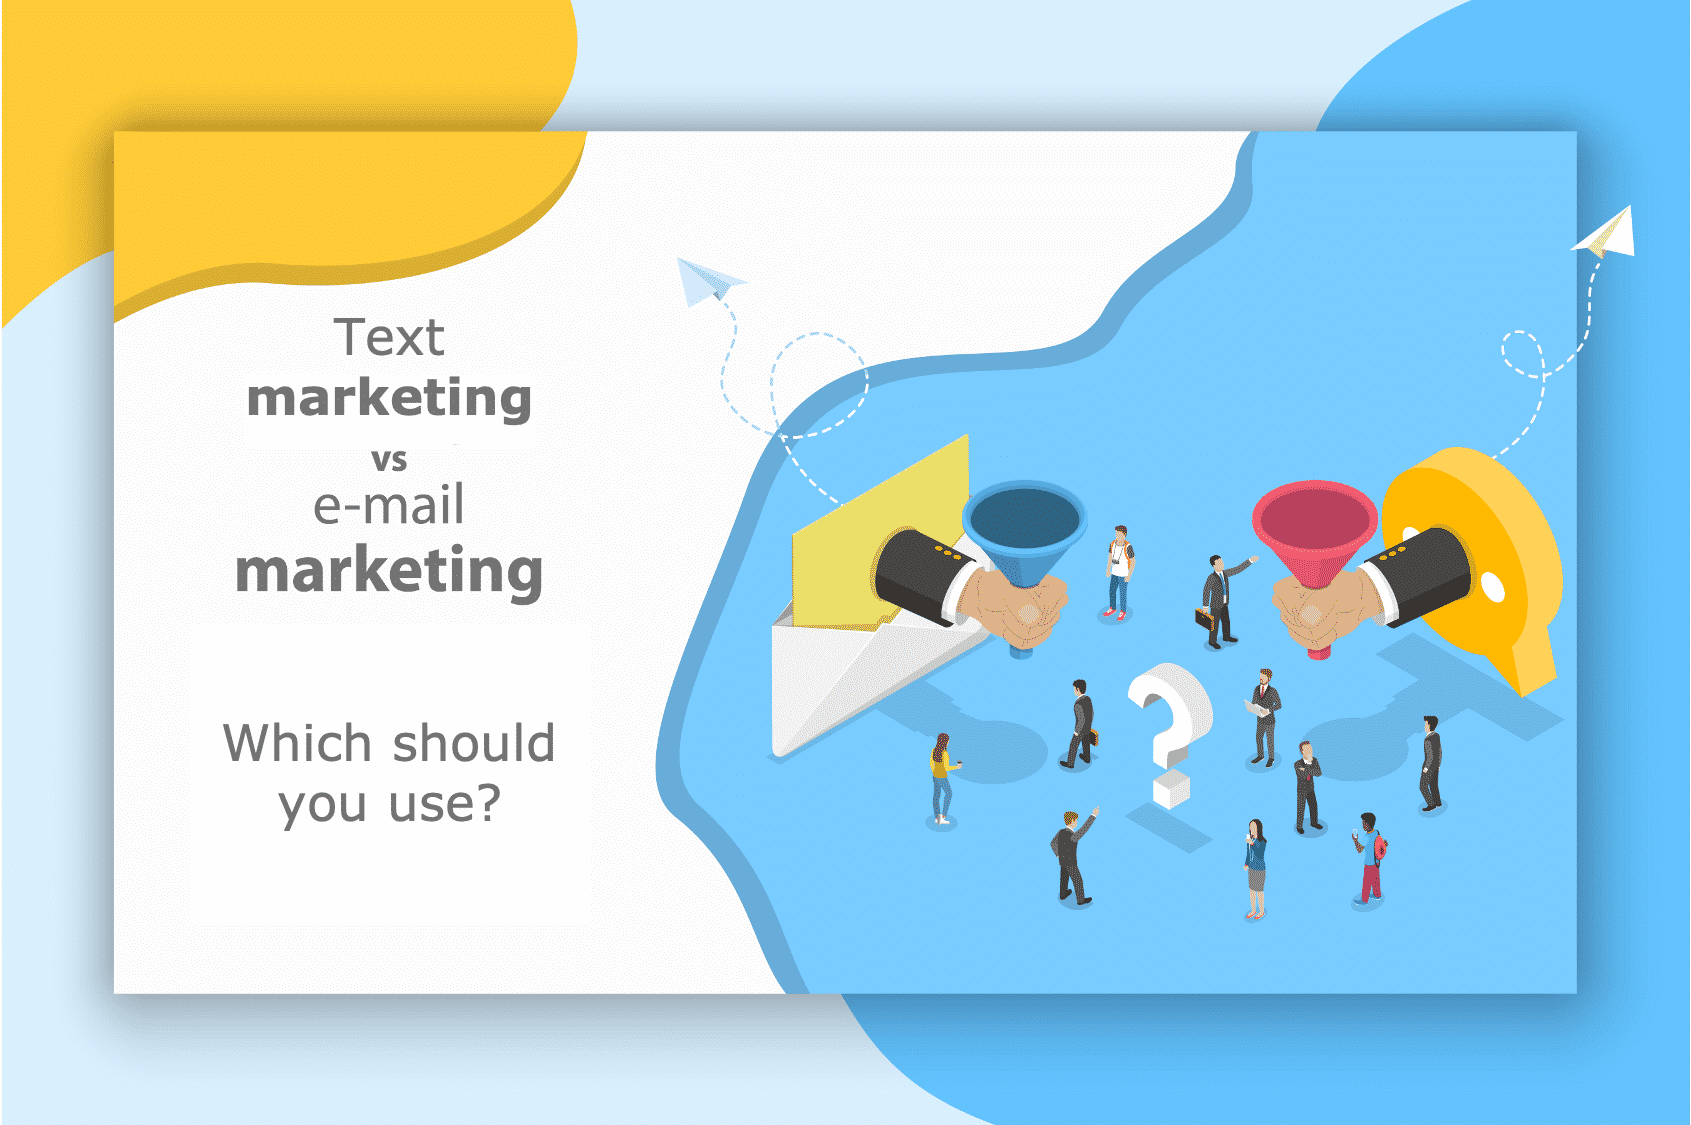 Text Marketing vs Email Marketing, which is better in 2021?